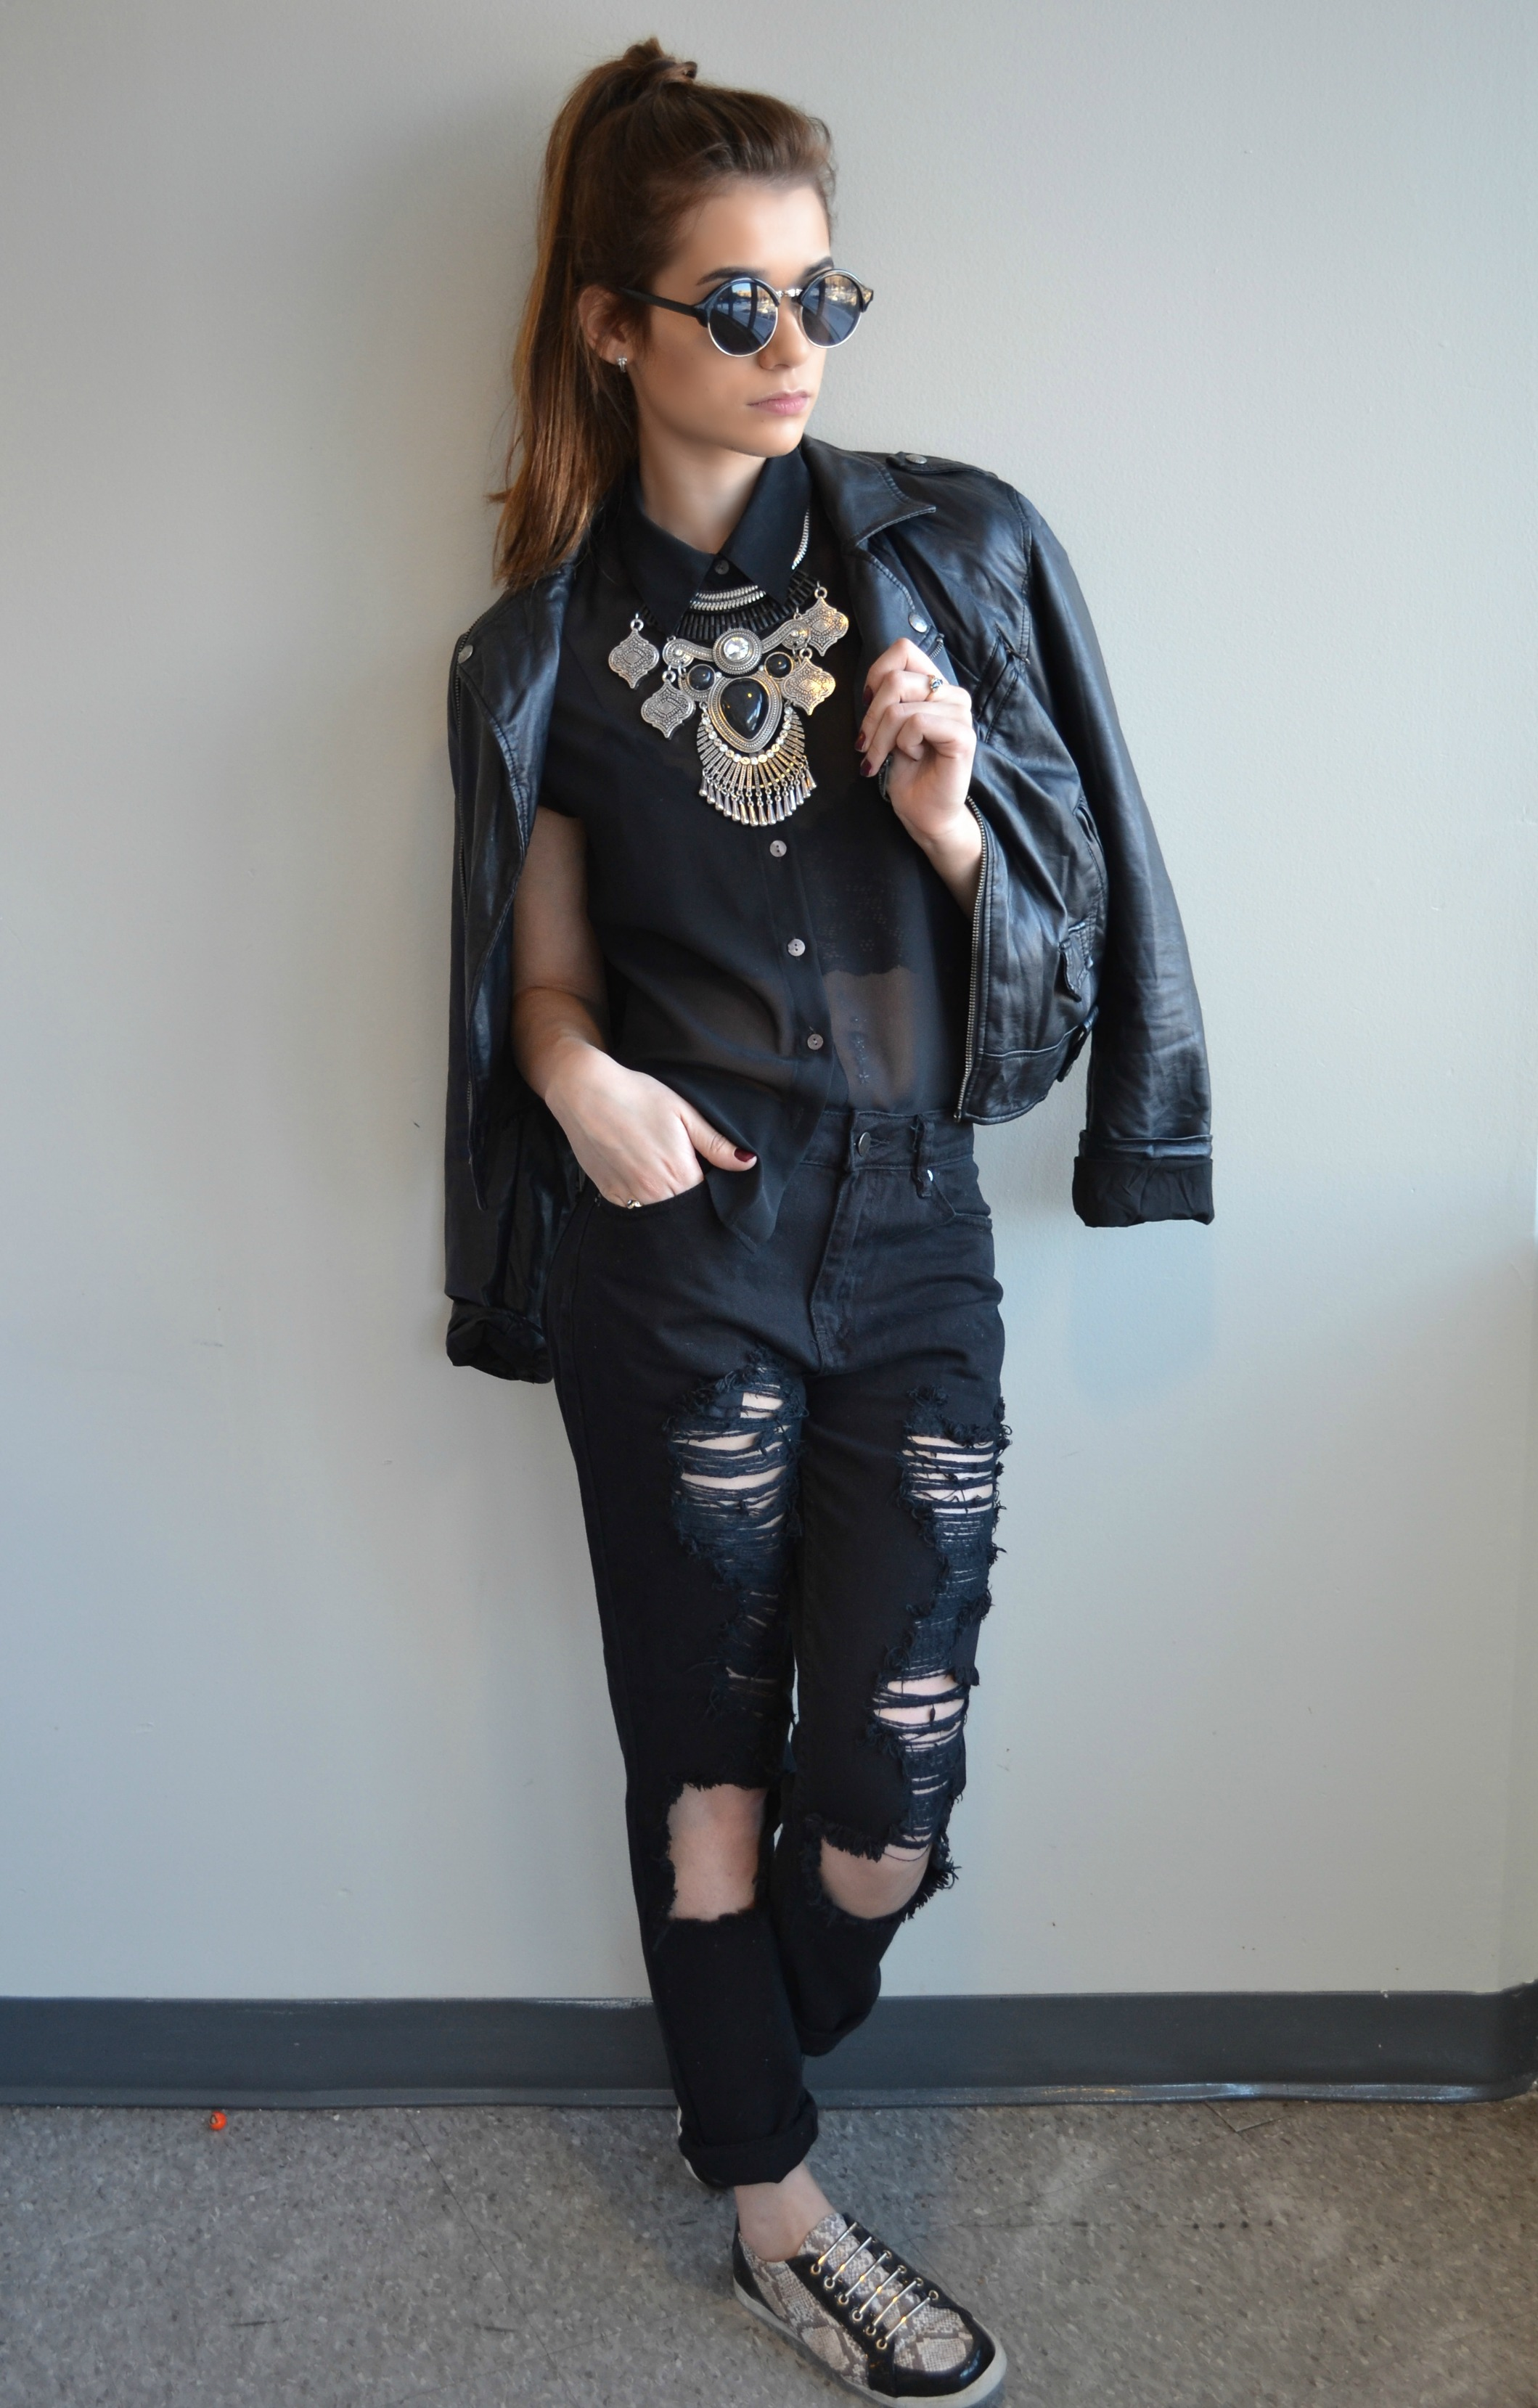 Full Outfit